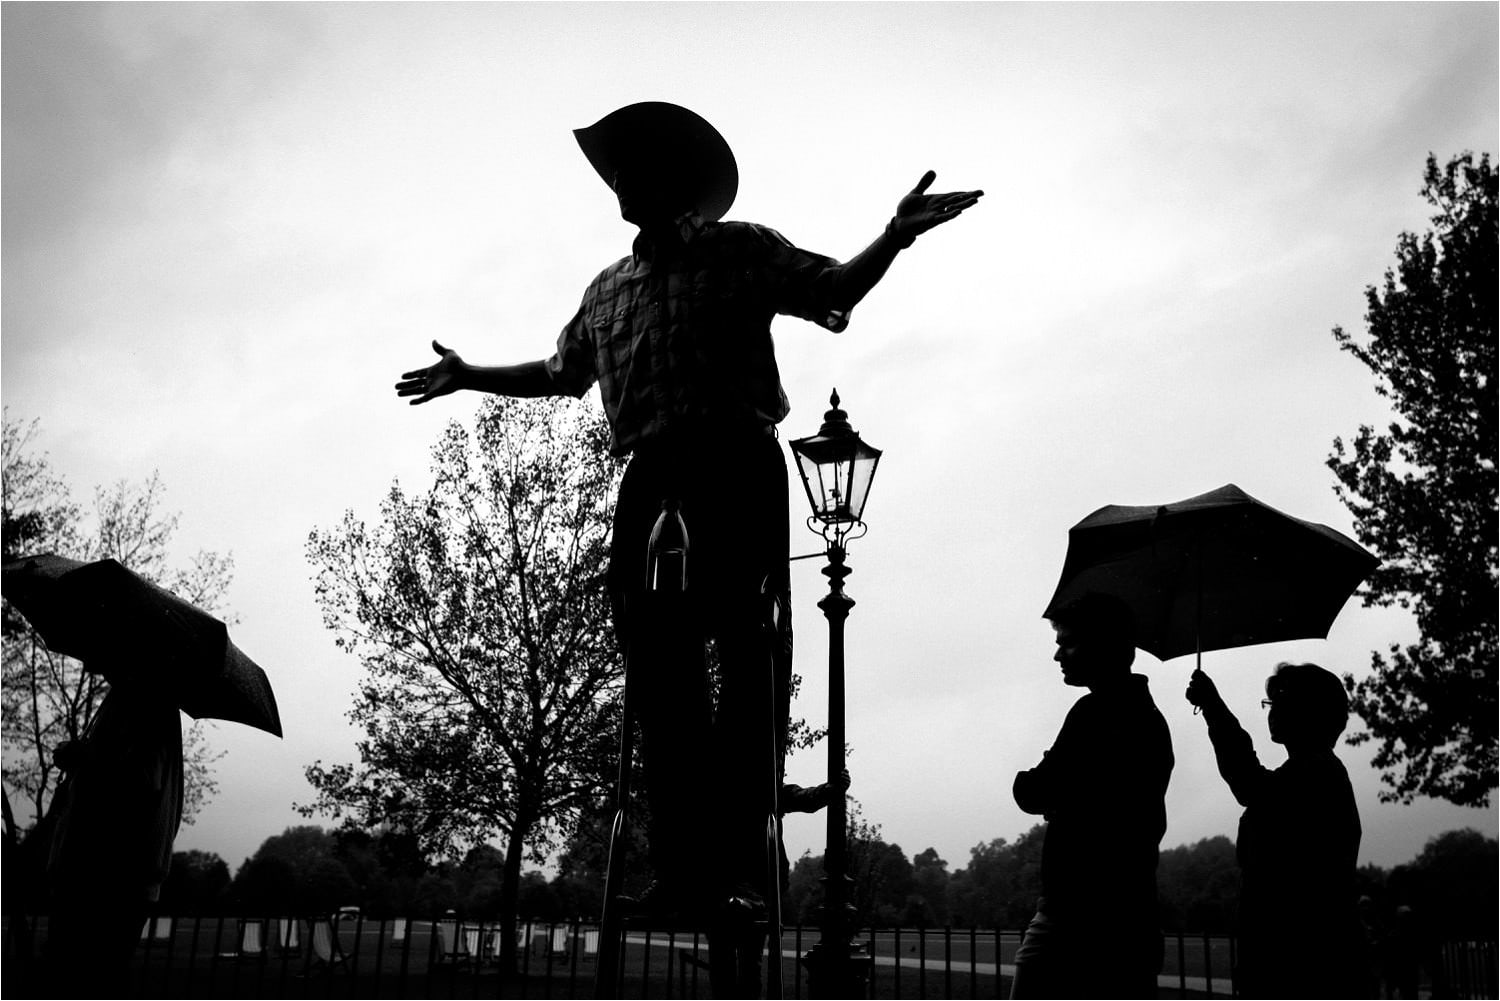 Cowboy at Speakers Corner